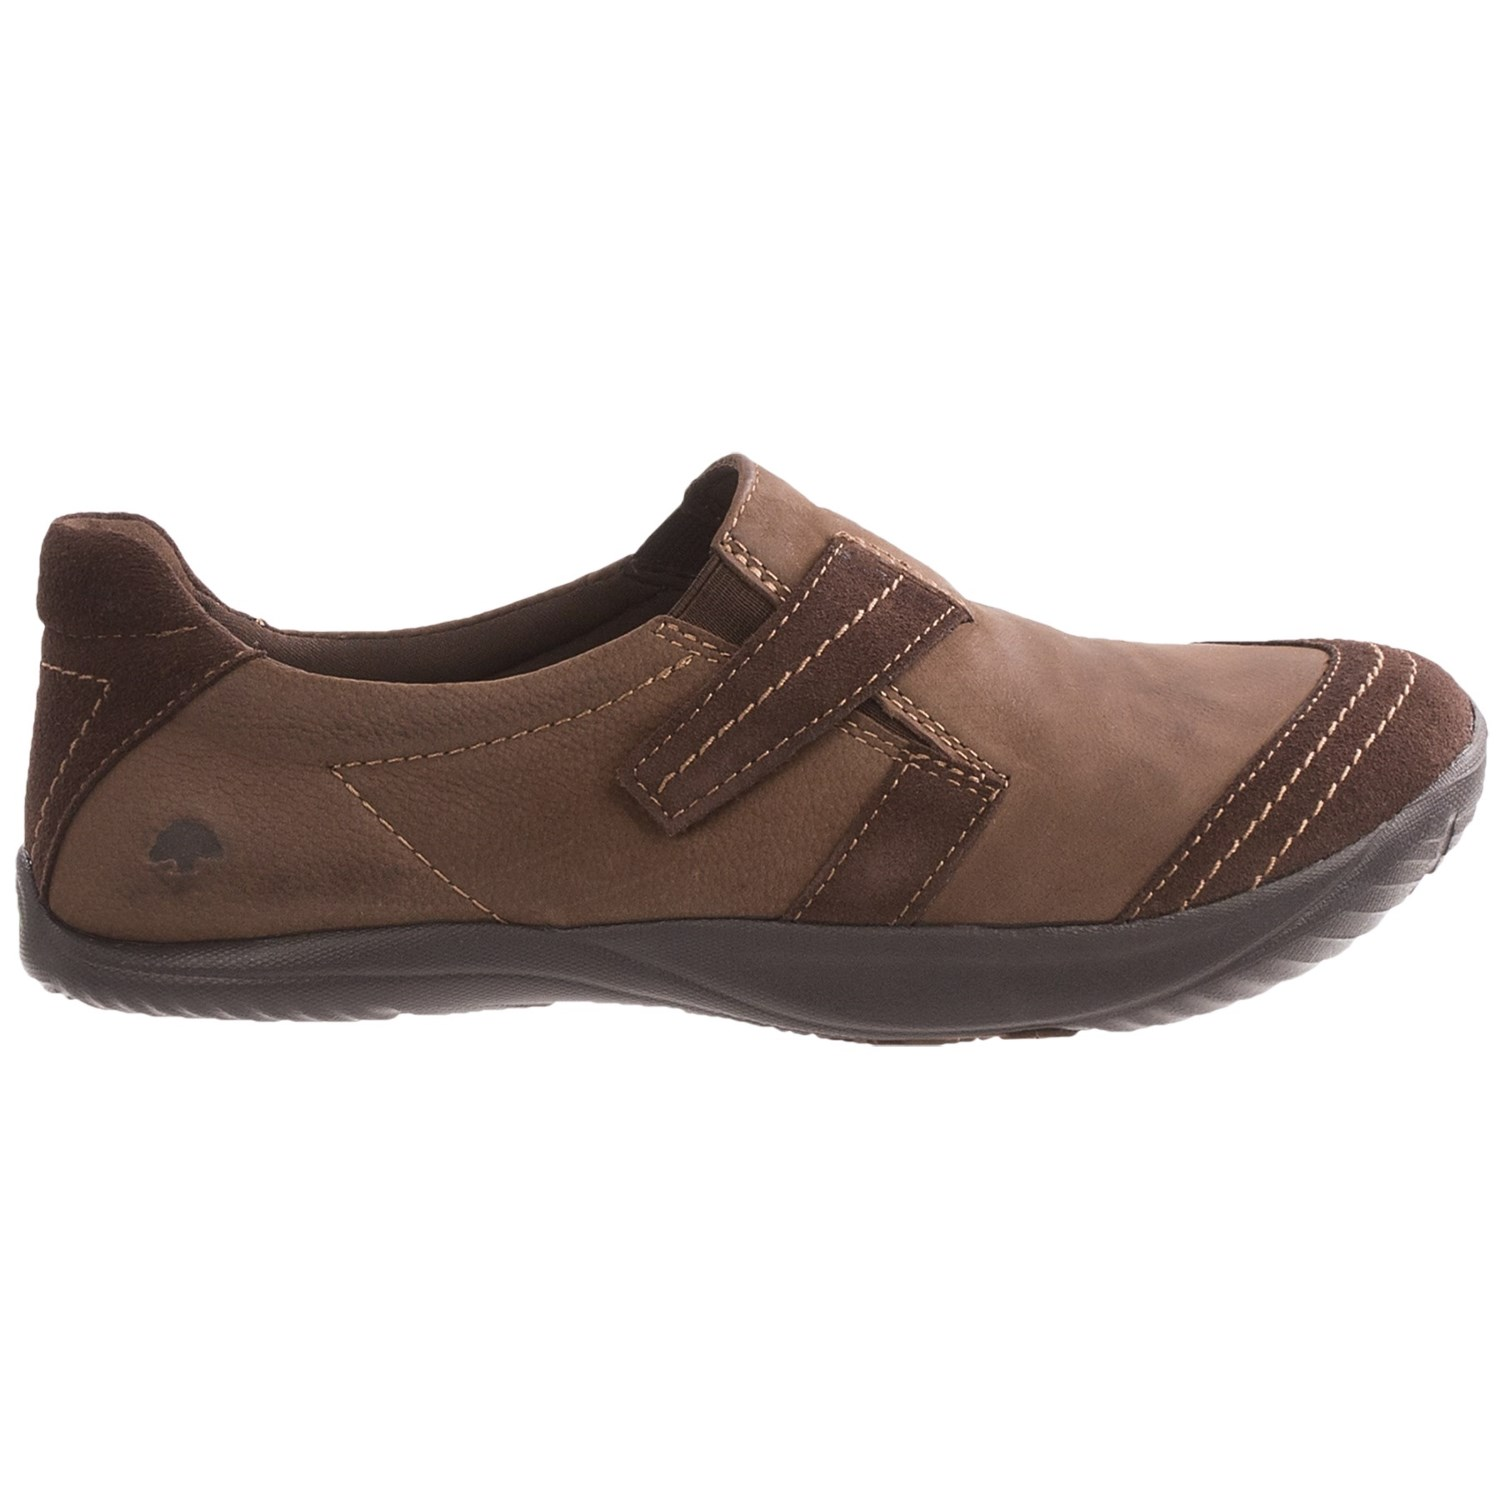 Kalso Earth Shoes Women